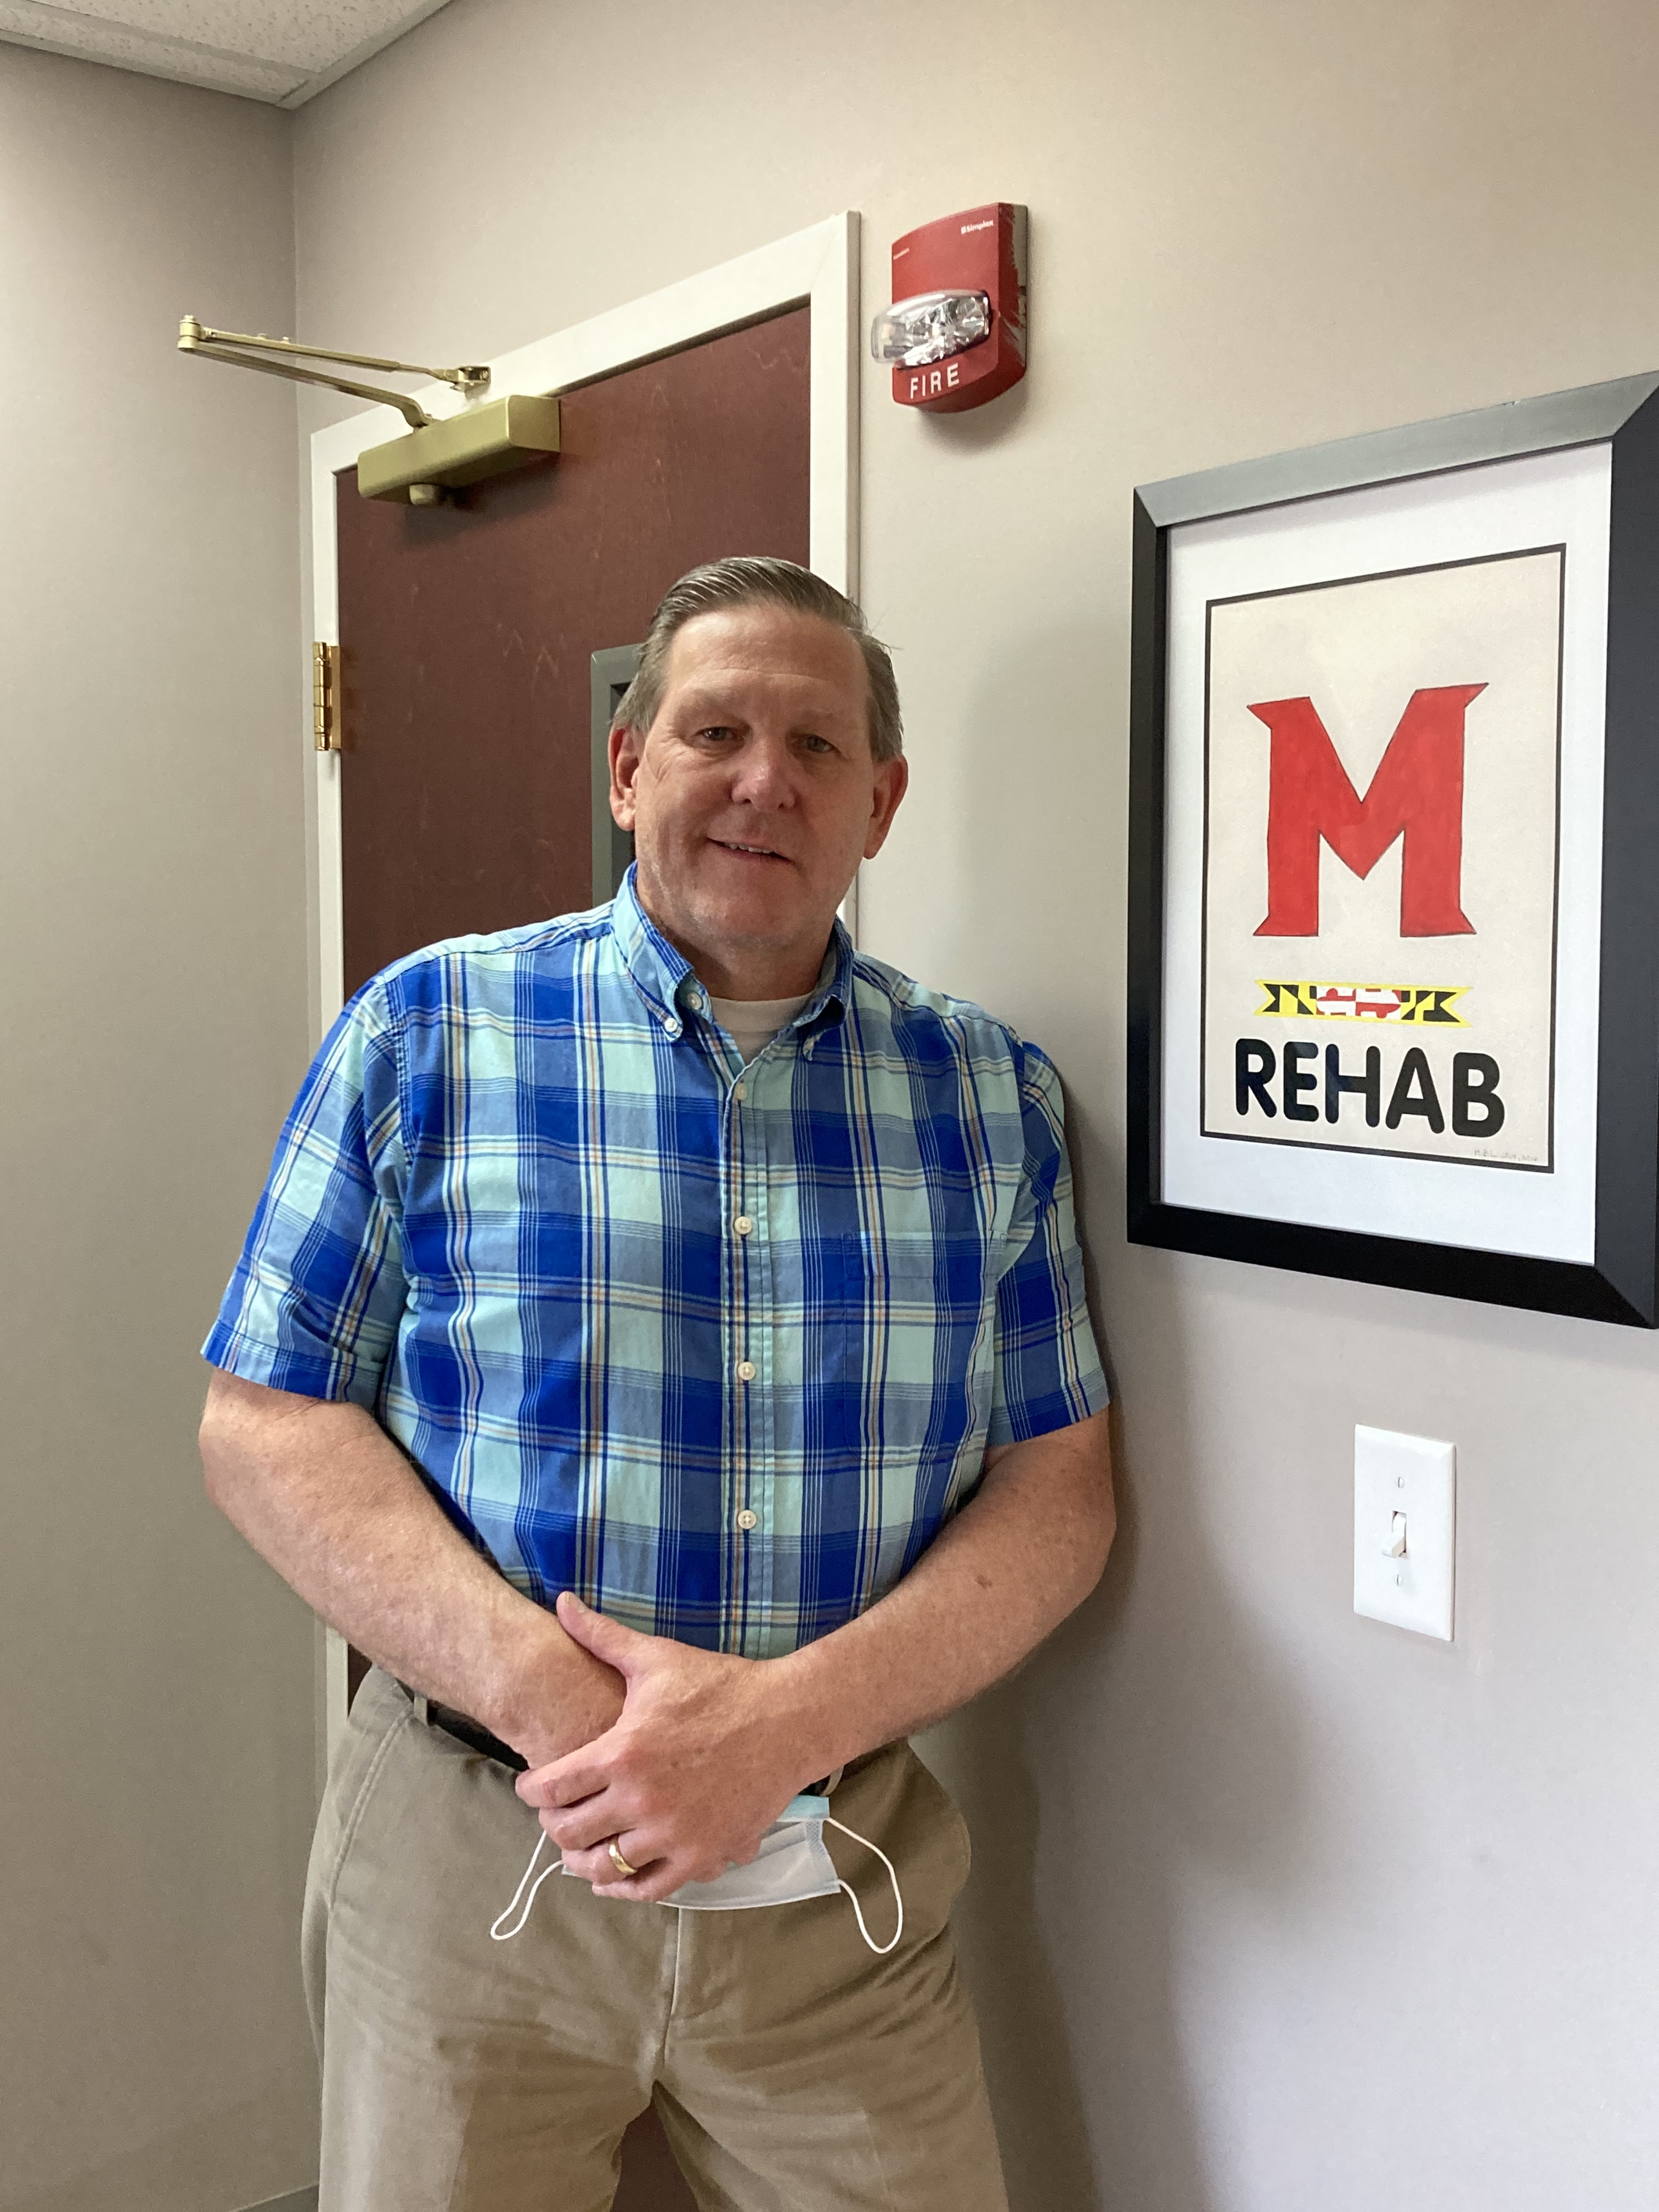 Michael Kuegler – He has the right touch!